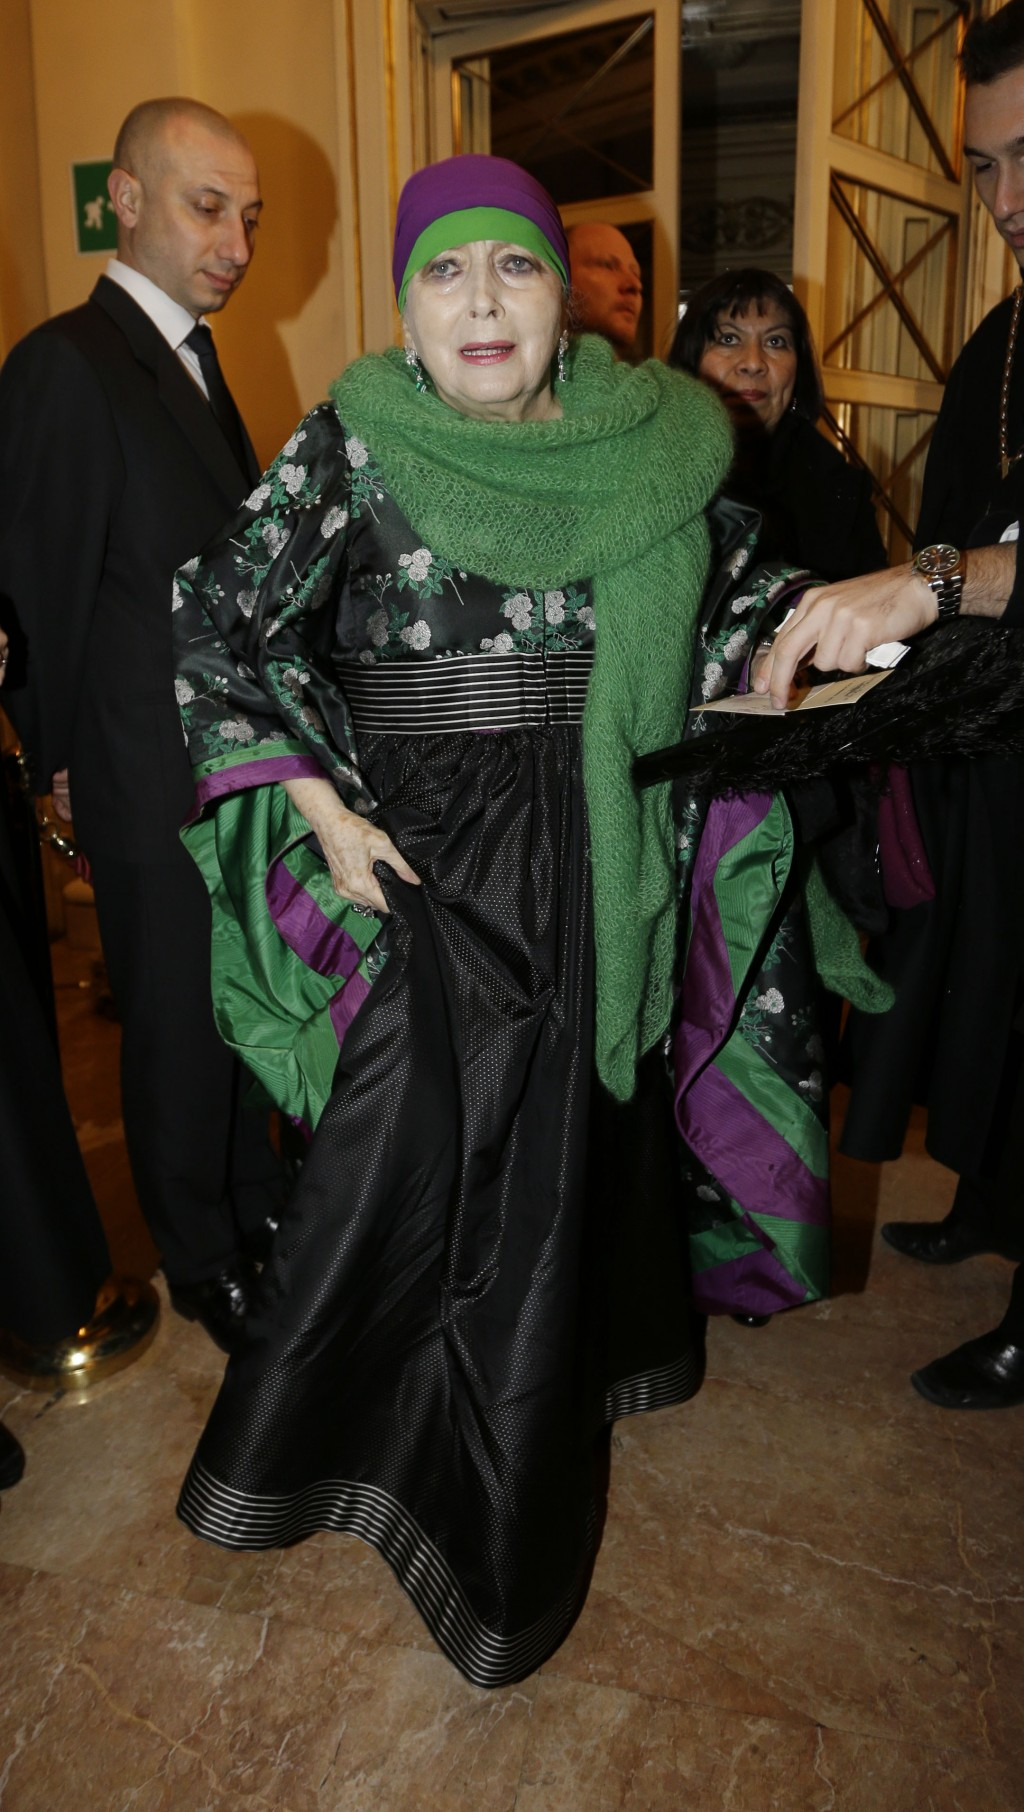 FILE - In this photo taken on Dec. 7, 2012, Italian actress Valentina Cortese arrives at the Milan La Scala theater, Italy. The renown actress, who wo